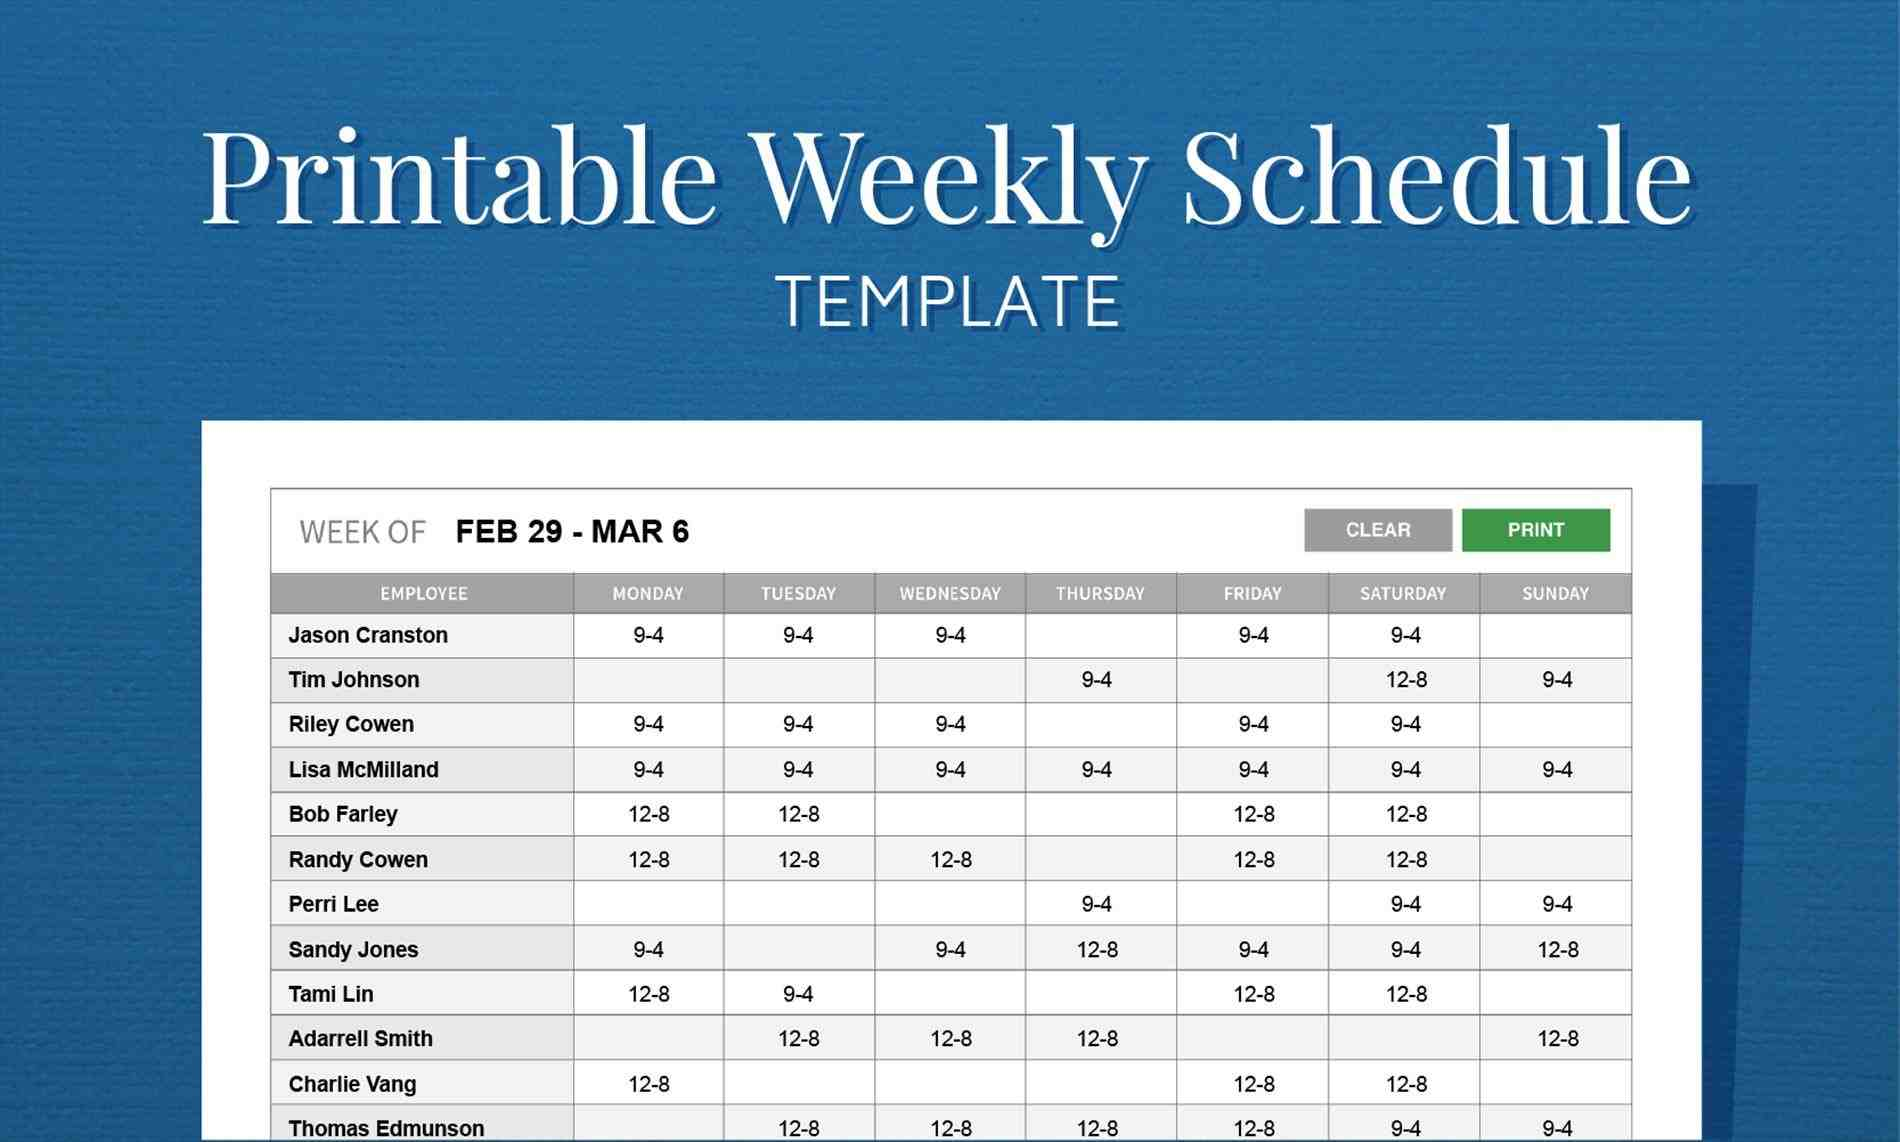 schedule rhpinterestcom free Top 5 Resources To Get Free Weekly Calendar Templates monthly work schedule template weekly employee hour shift